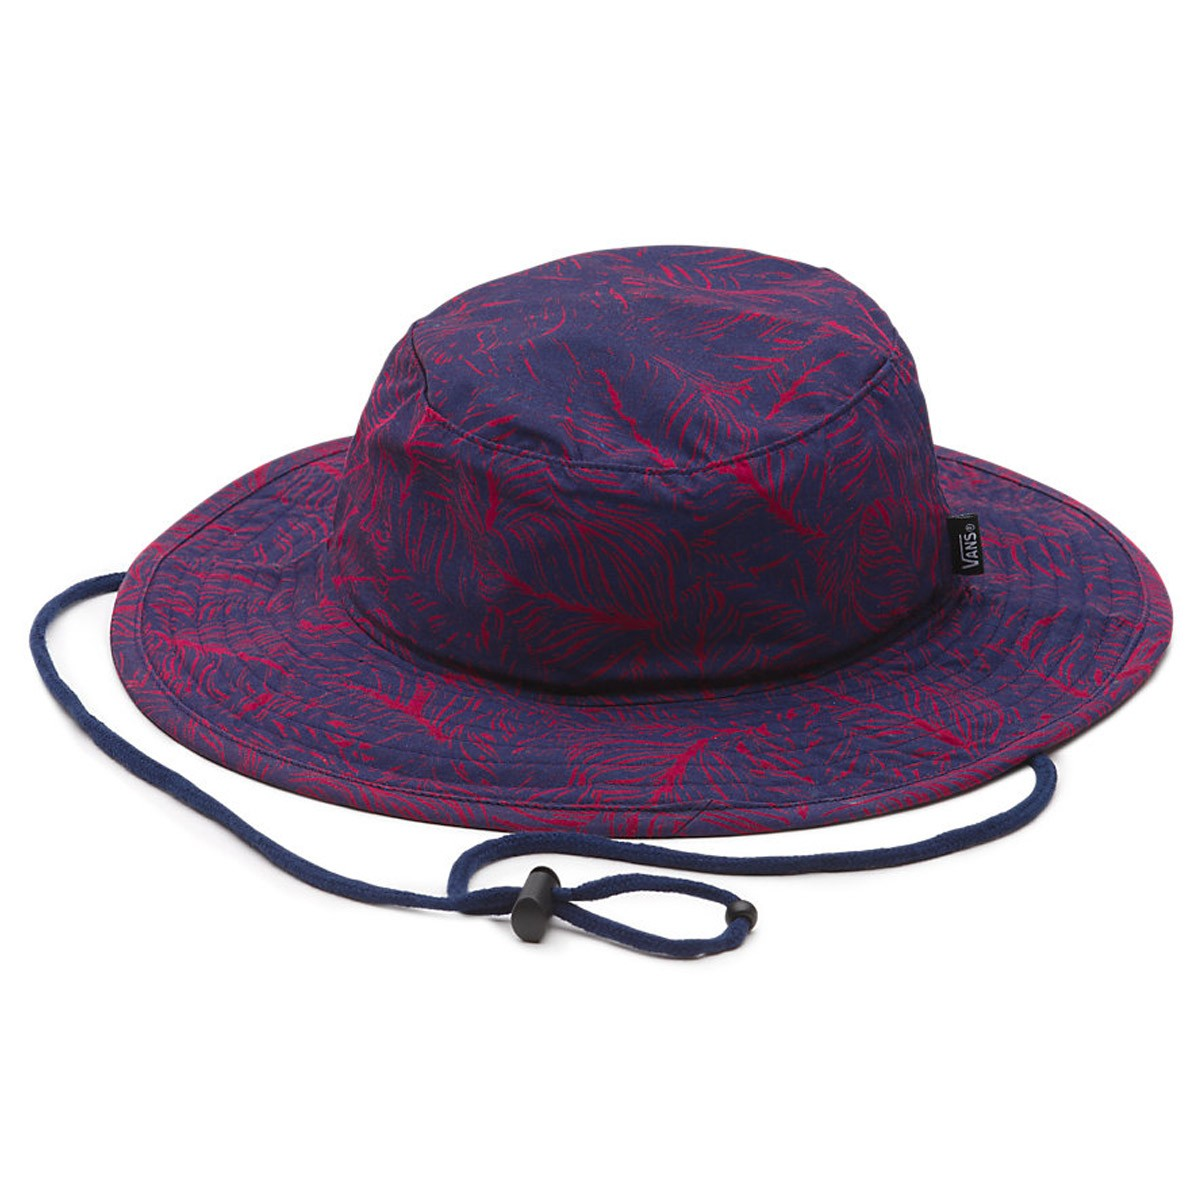 vans-boonie-bucket-hat---beet-red-open-leaf-2 2.1506710255.jpg e9085a73e80b